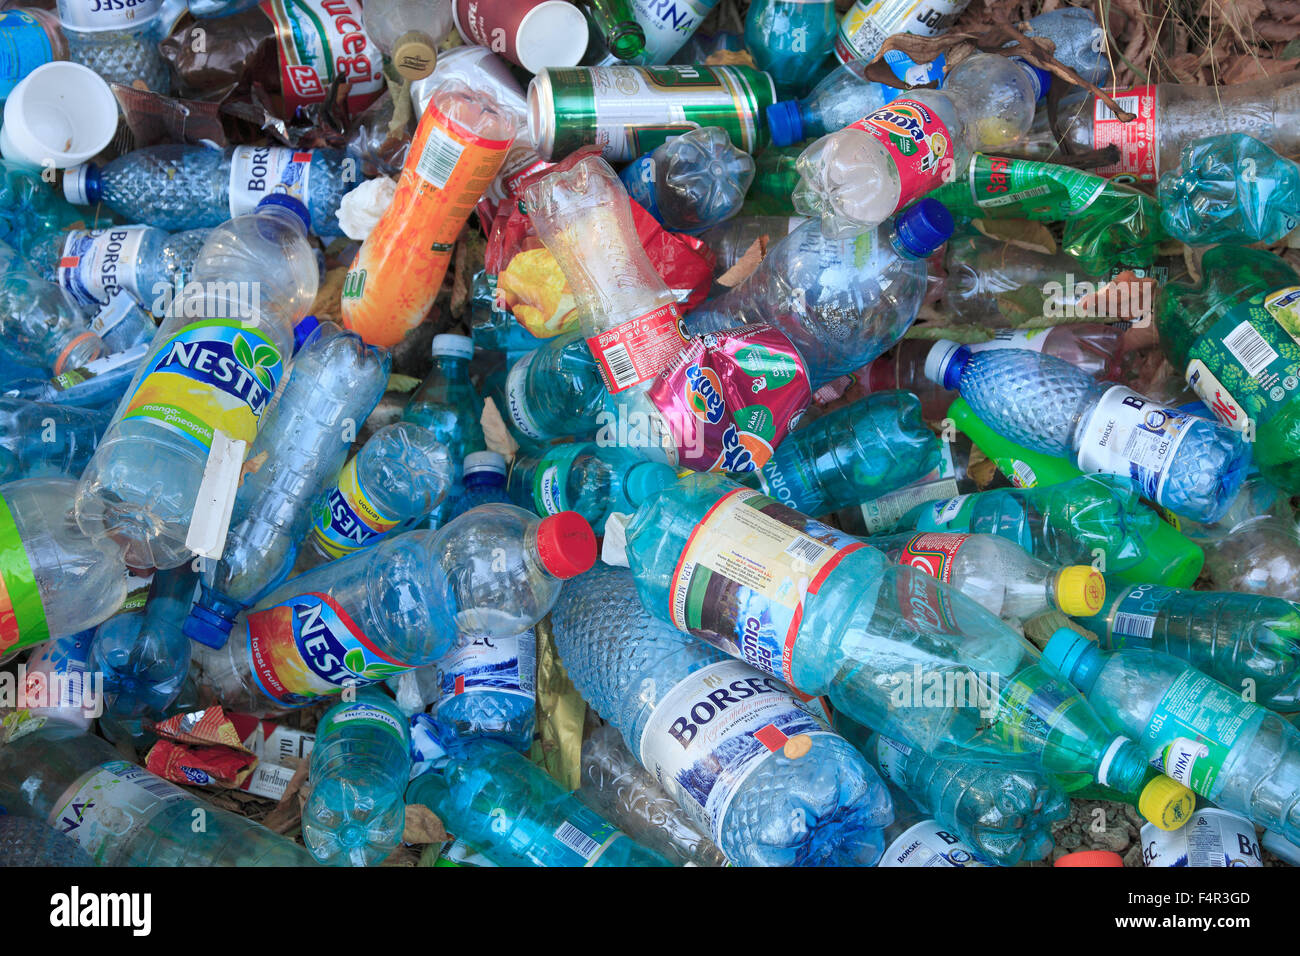 Plastic bottles pollution illegal waste disposal stock for Things made from waste plastic bottles